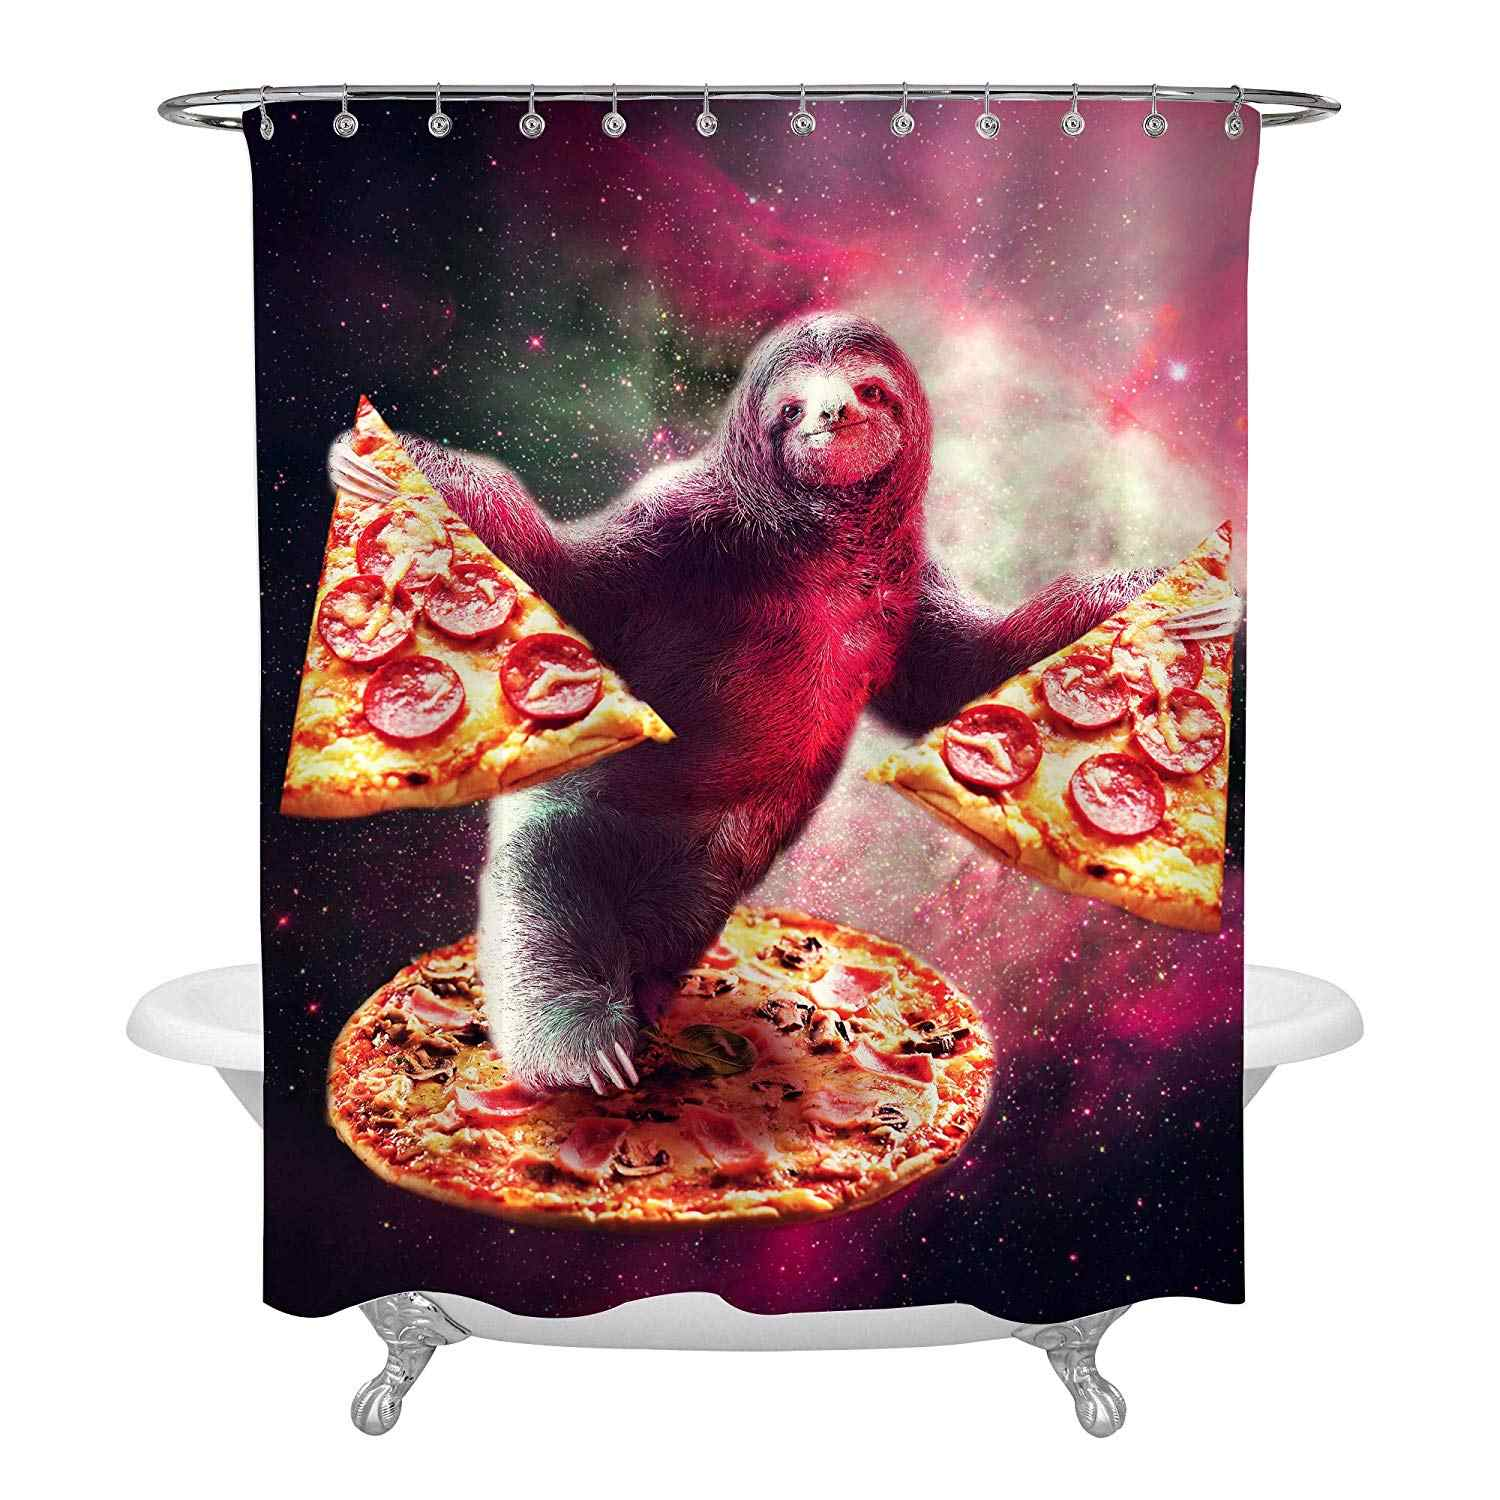 sloth pizza in colorful galaxy space shower curtain set multicolor bathroom accessories for funny home decor